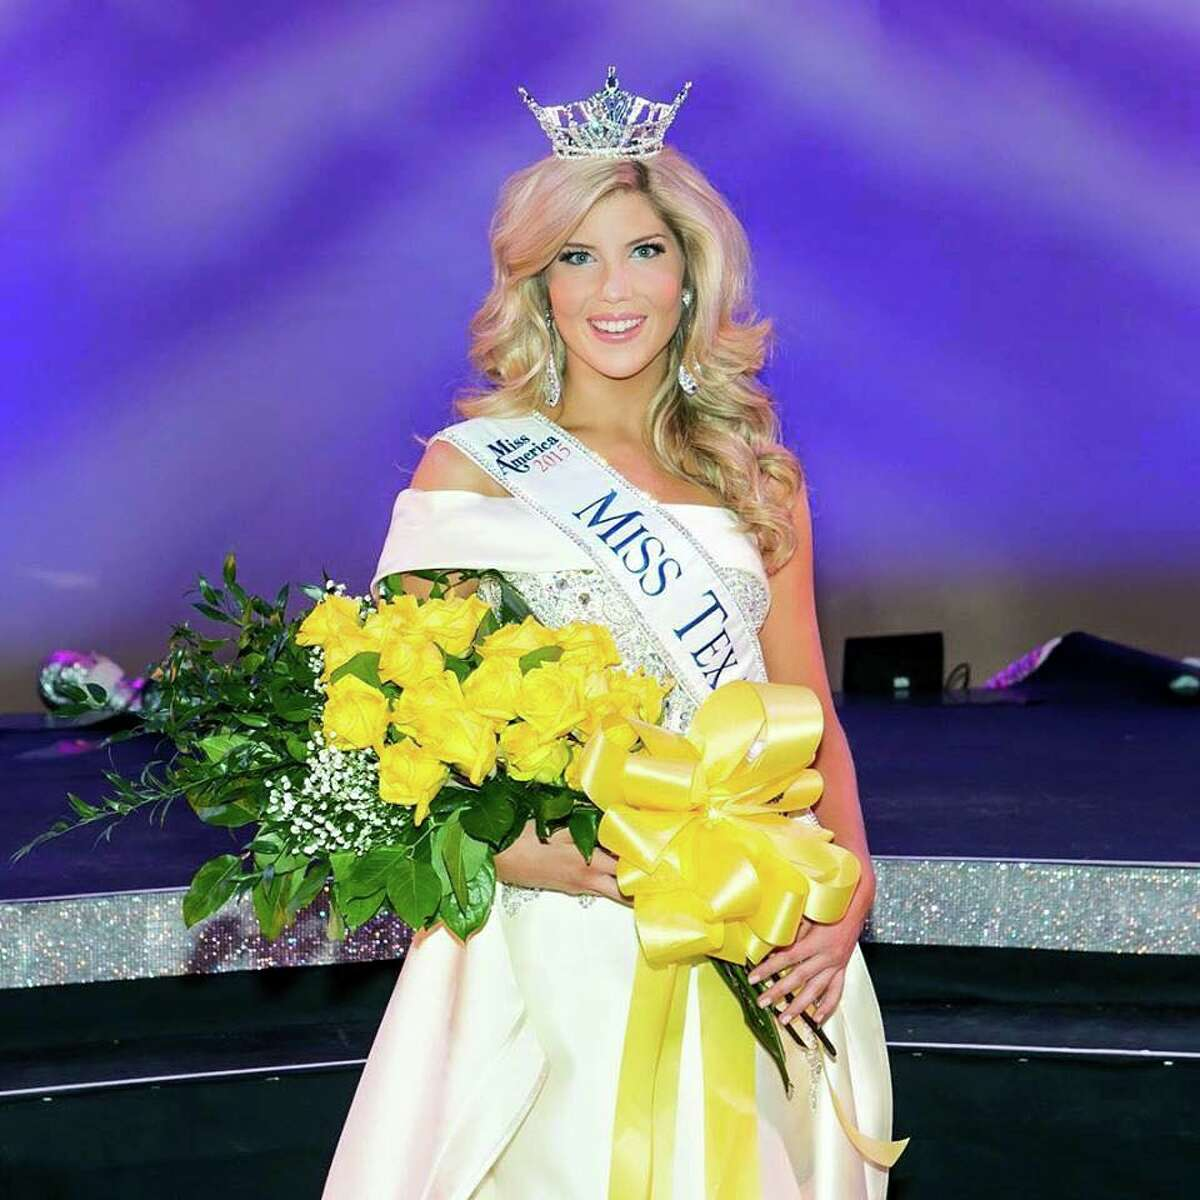 Meet the newly crowned Miss Texas, Shannon Sanderford.